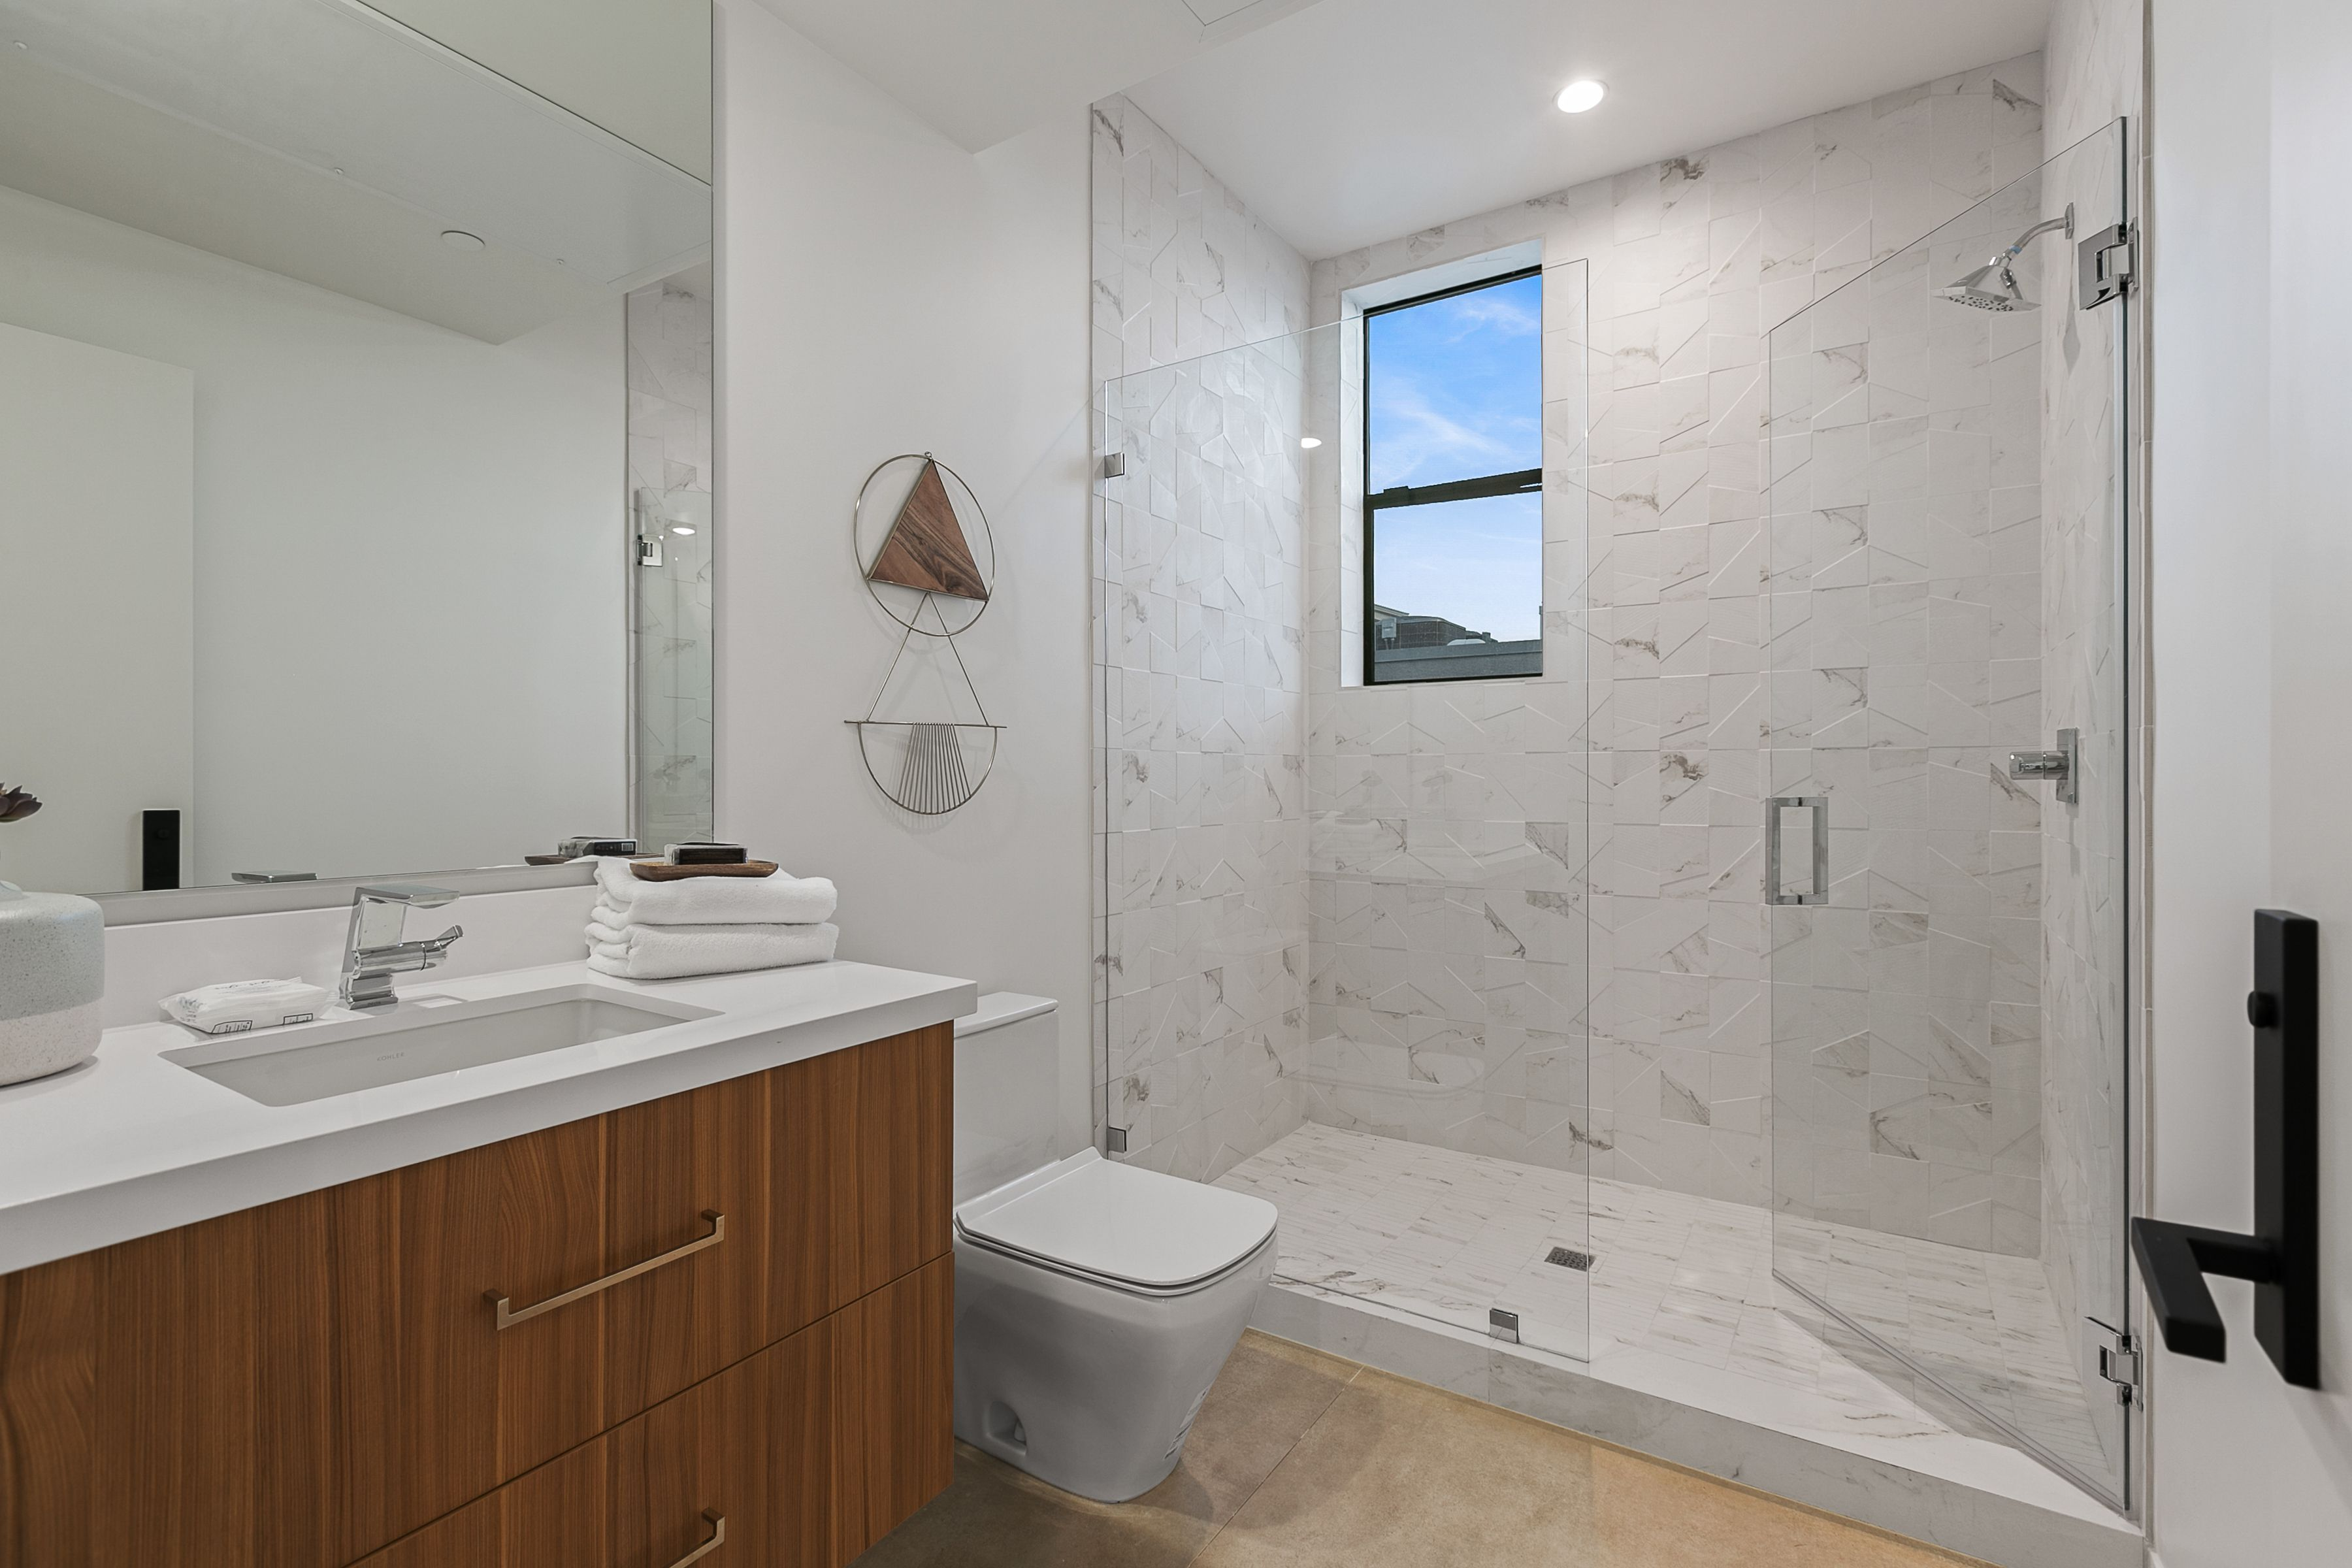 Bathroom featured in the Lot 4 By Skye Urban Home in Los Angeles, CA